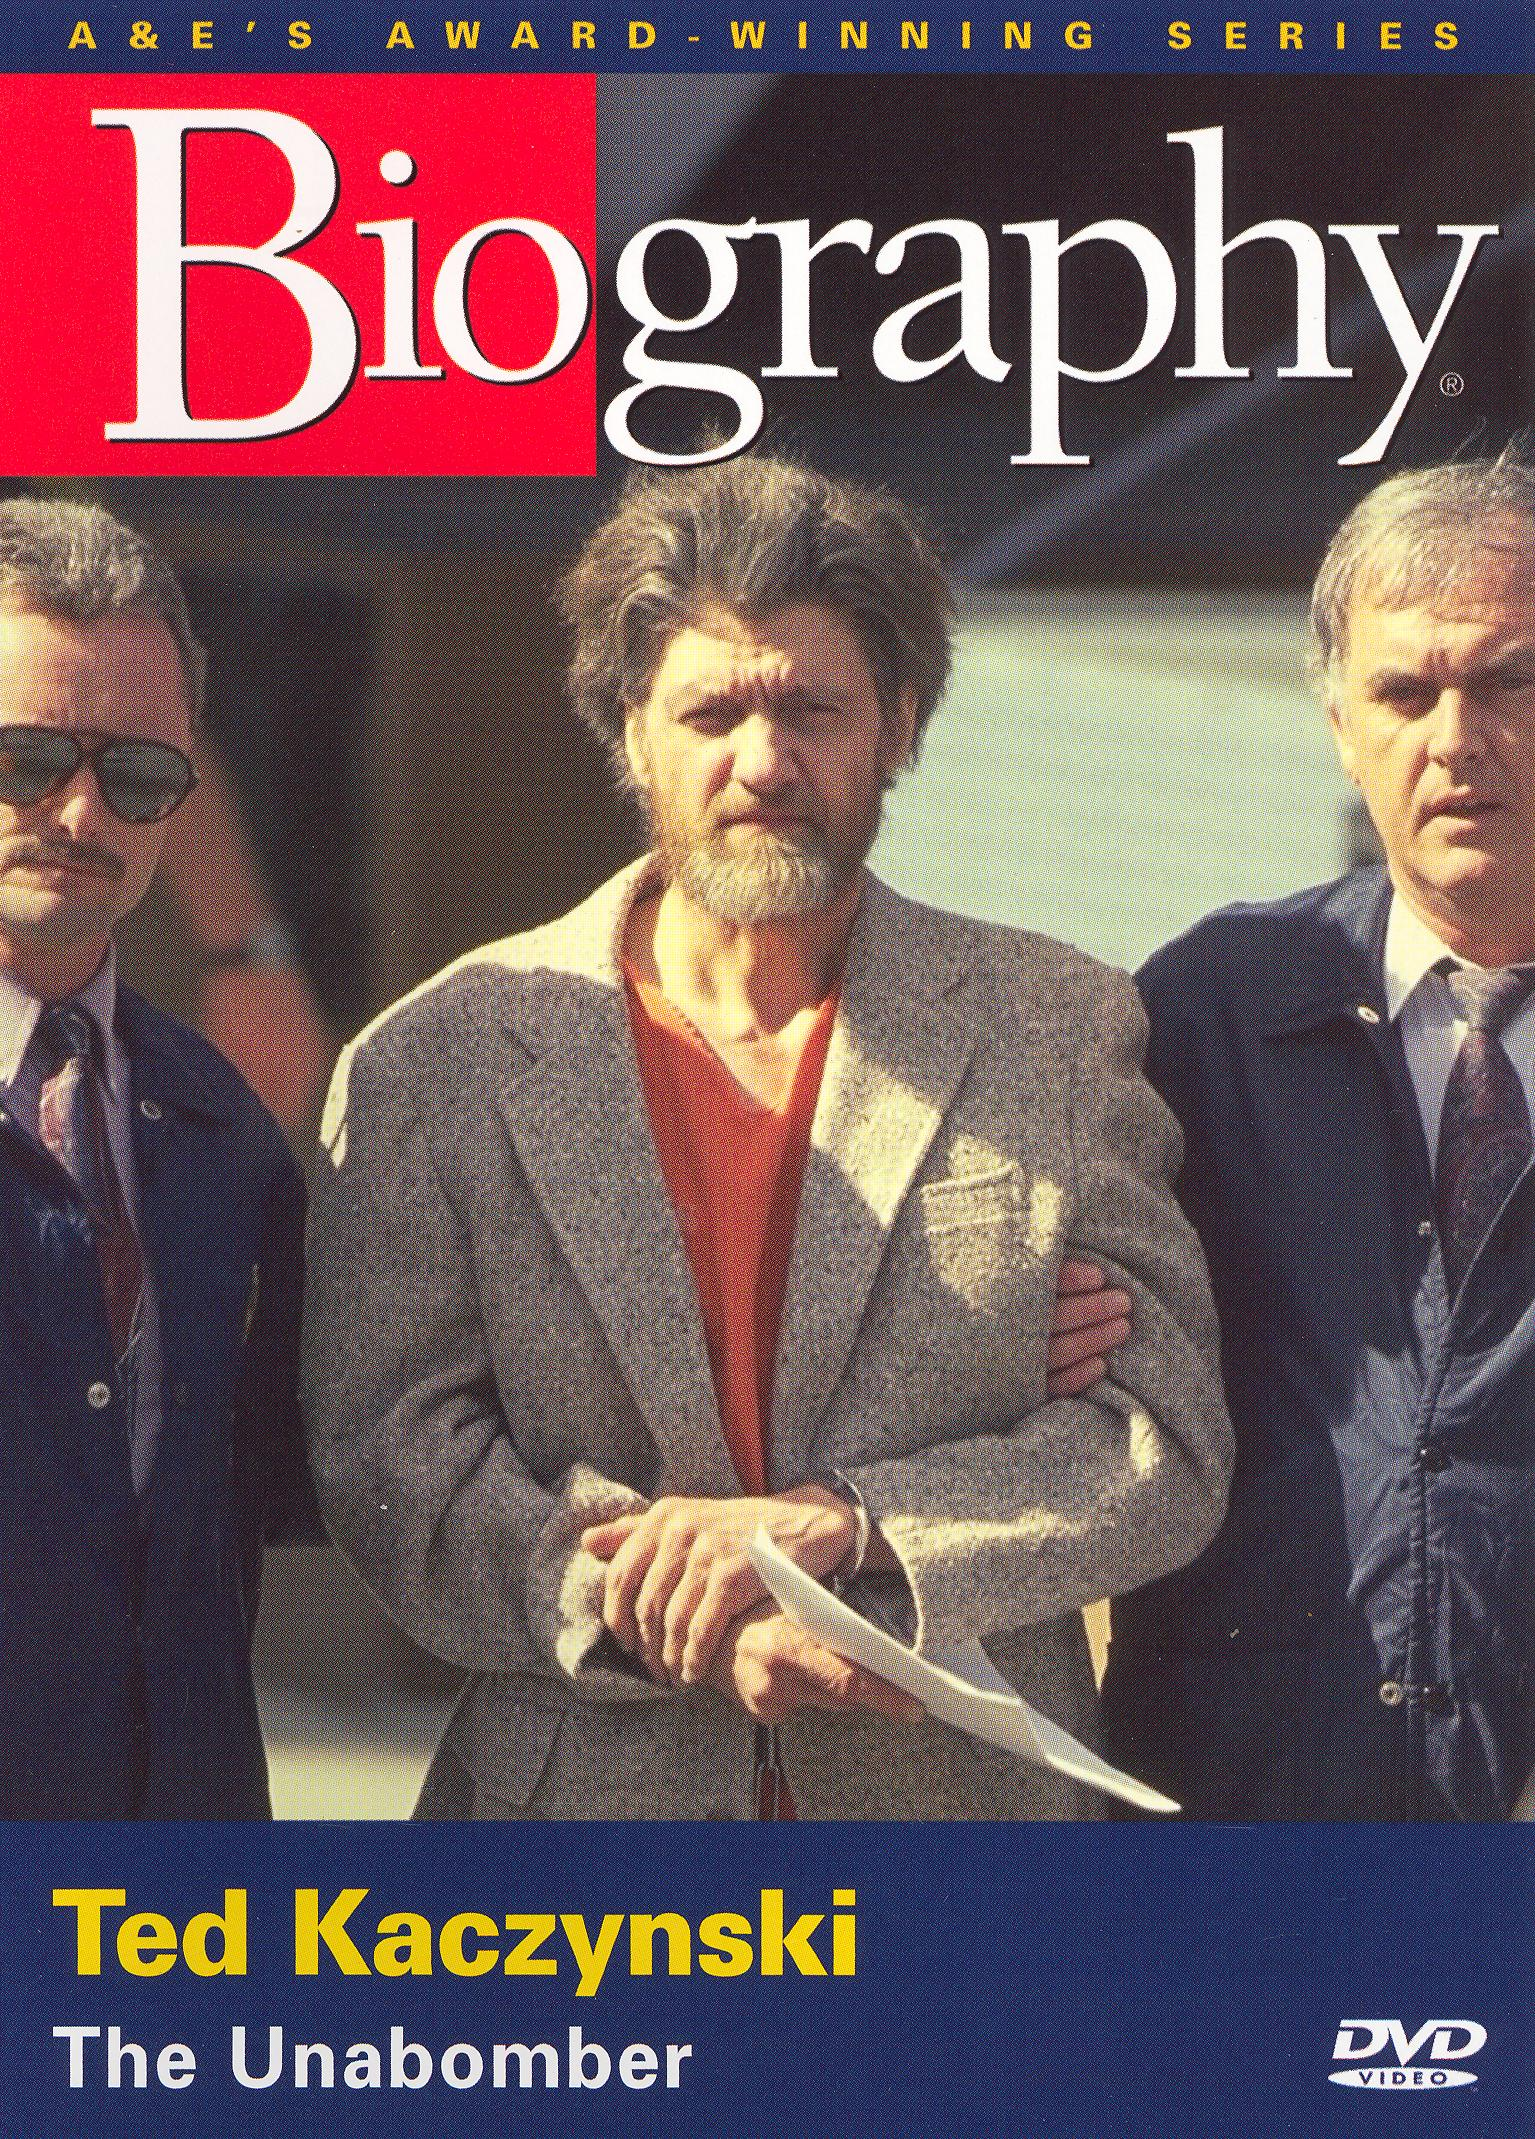 a biography of ted kaczynski the unabomber Ted kaczynski biography quick facts name: ted kaczynski occupation: terrorist birth date: may 22, 1942 (age: 71) education: harvard university place of birth: chicago, illinois aka: unabomber zodiac sign: gemini iq: 167 best known for ted kaczynski is a mathematician best known for a.